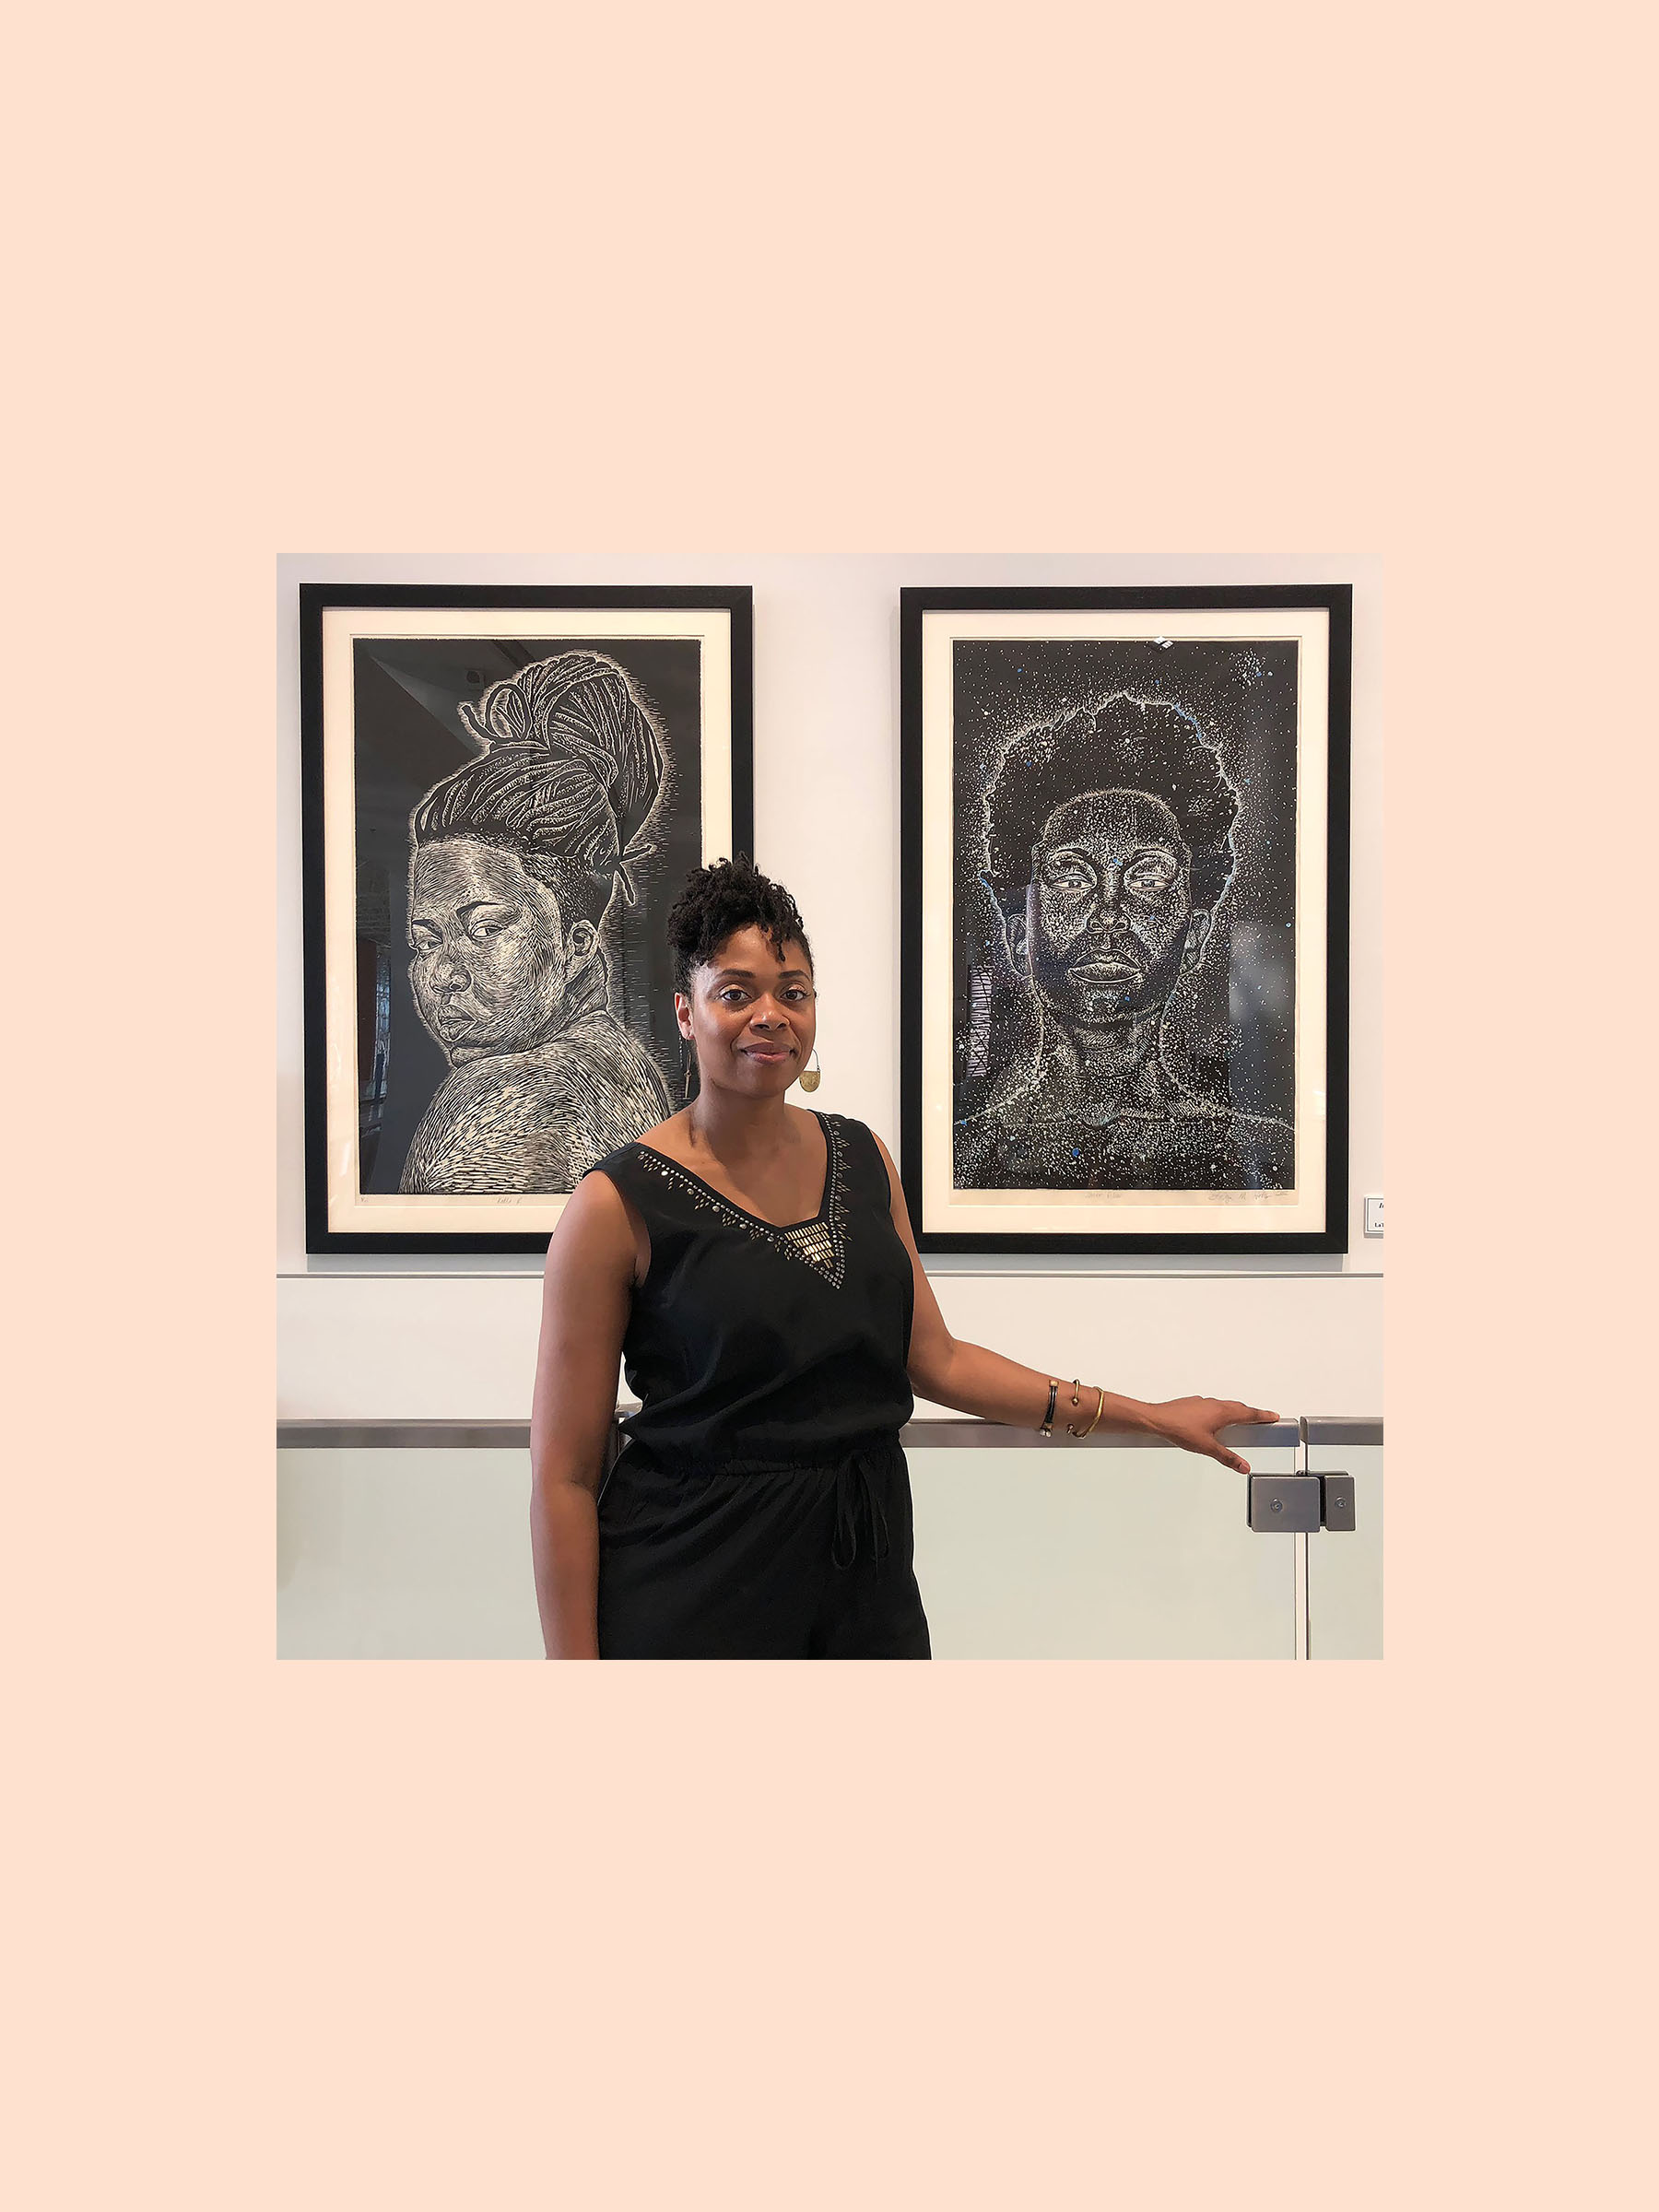 Latoya Hobbs    LaToya M. Hobbs is a native of North Little Rock, AR. She received B.A degree in Studio Art with an emphasis in Painting from the University of Arkansas at Little Rock and her MFA in Printmaking from Purdue University. LaToya's work deals with figurative imagery that addresses the ideas of beauty and cultural identity while reexamining the traditional triadic artist, model, viewer, relationship. Most recently she has expanded her practice to encompass ideas about maternity and the role of women as preservers of family, culture and community. Her exhibition record includes several national and international exhibitions and her work has also been featured in  Transition: An International Review , a publication of the W.E.B. Dubois Institute for African and African American Research at Harvard University. In addition to her own studio practice, LaToya devotes her time to teaching and inspiring young artists as a Professor at the Maryland Institute College of Art, Baltimore, MD   +  latoya hobbs in front of her prints, at an exhibition .